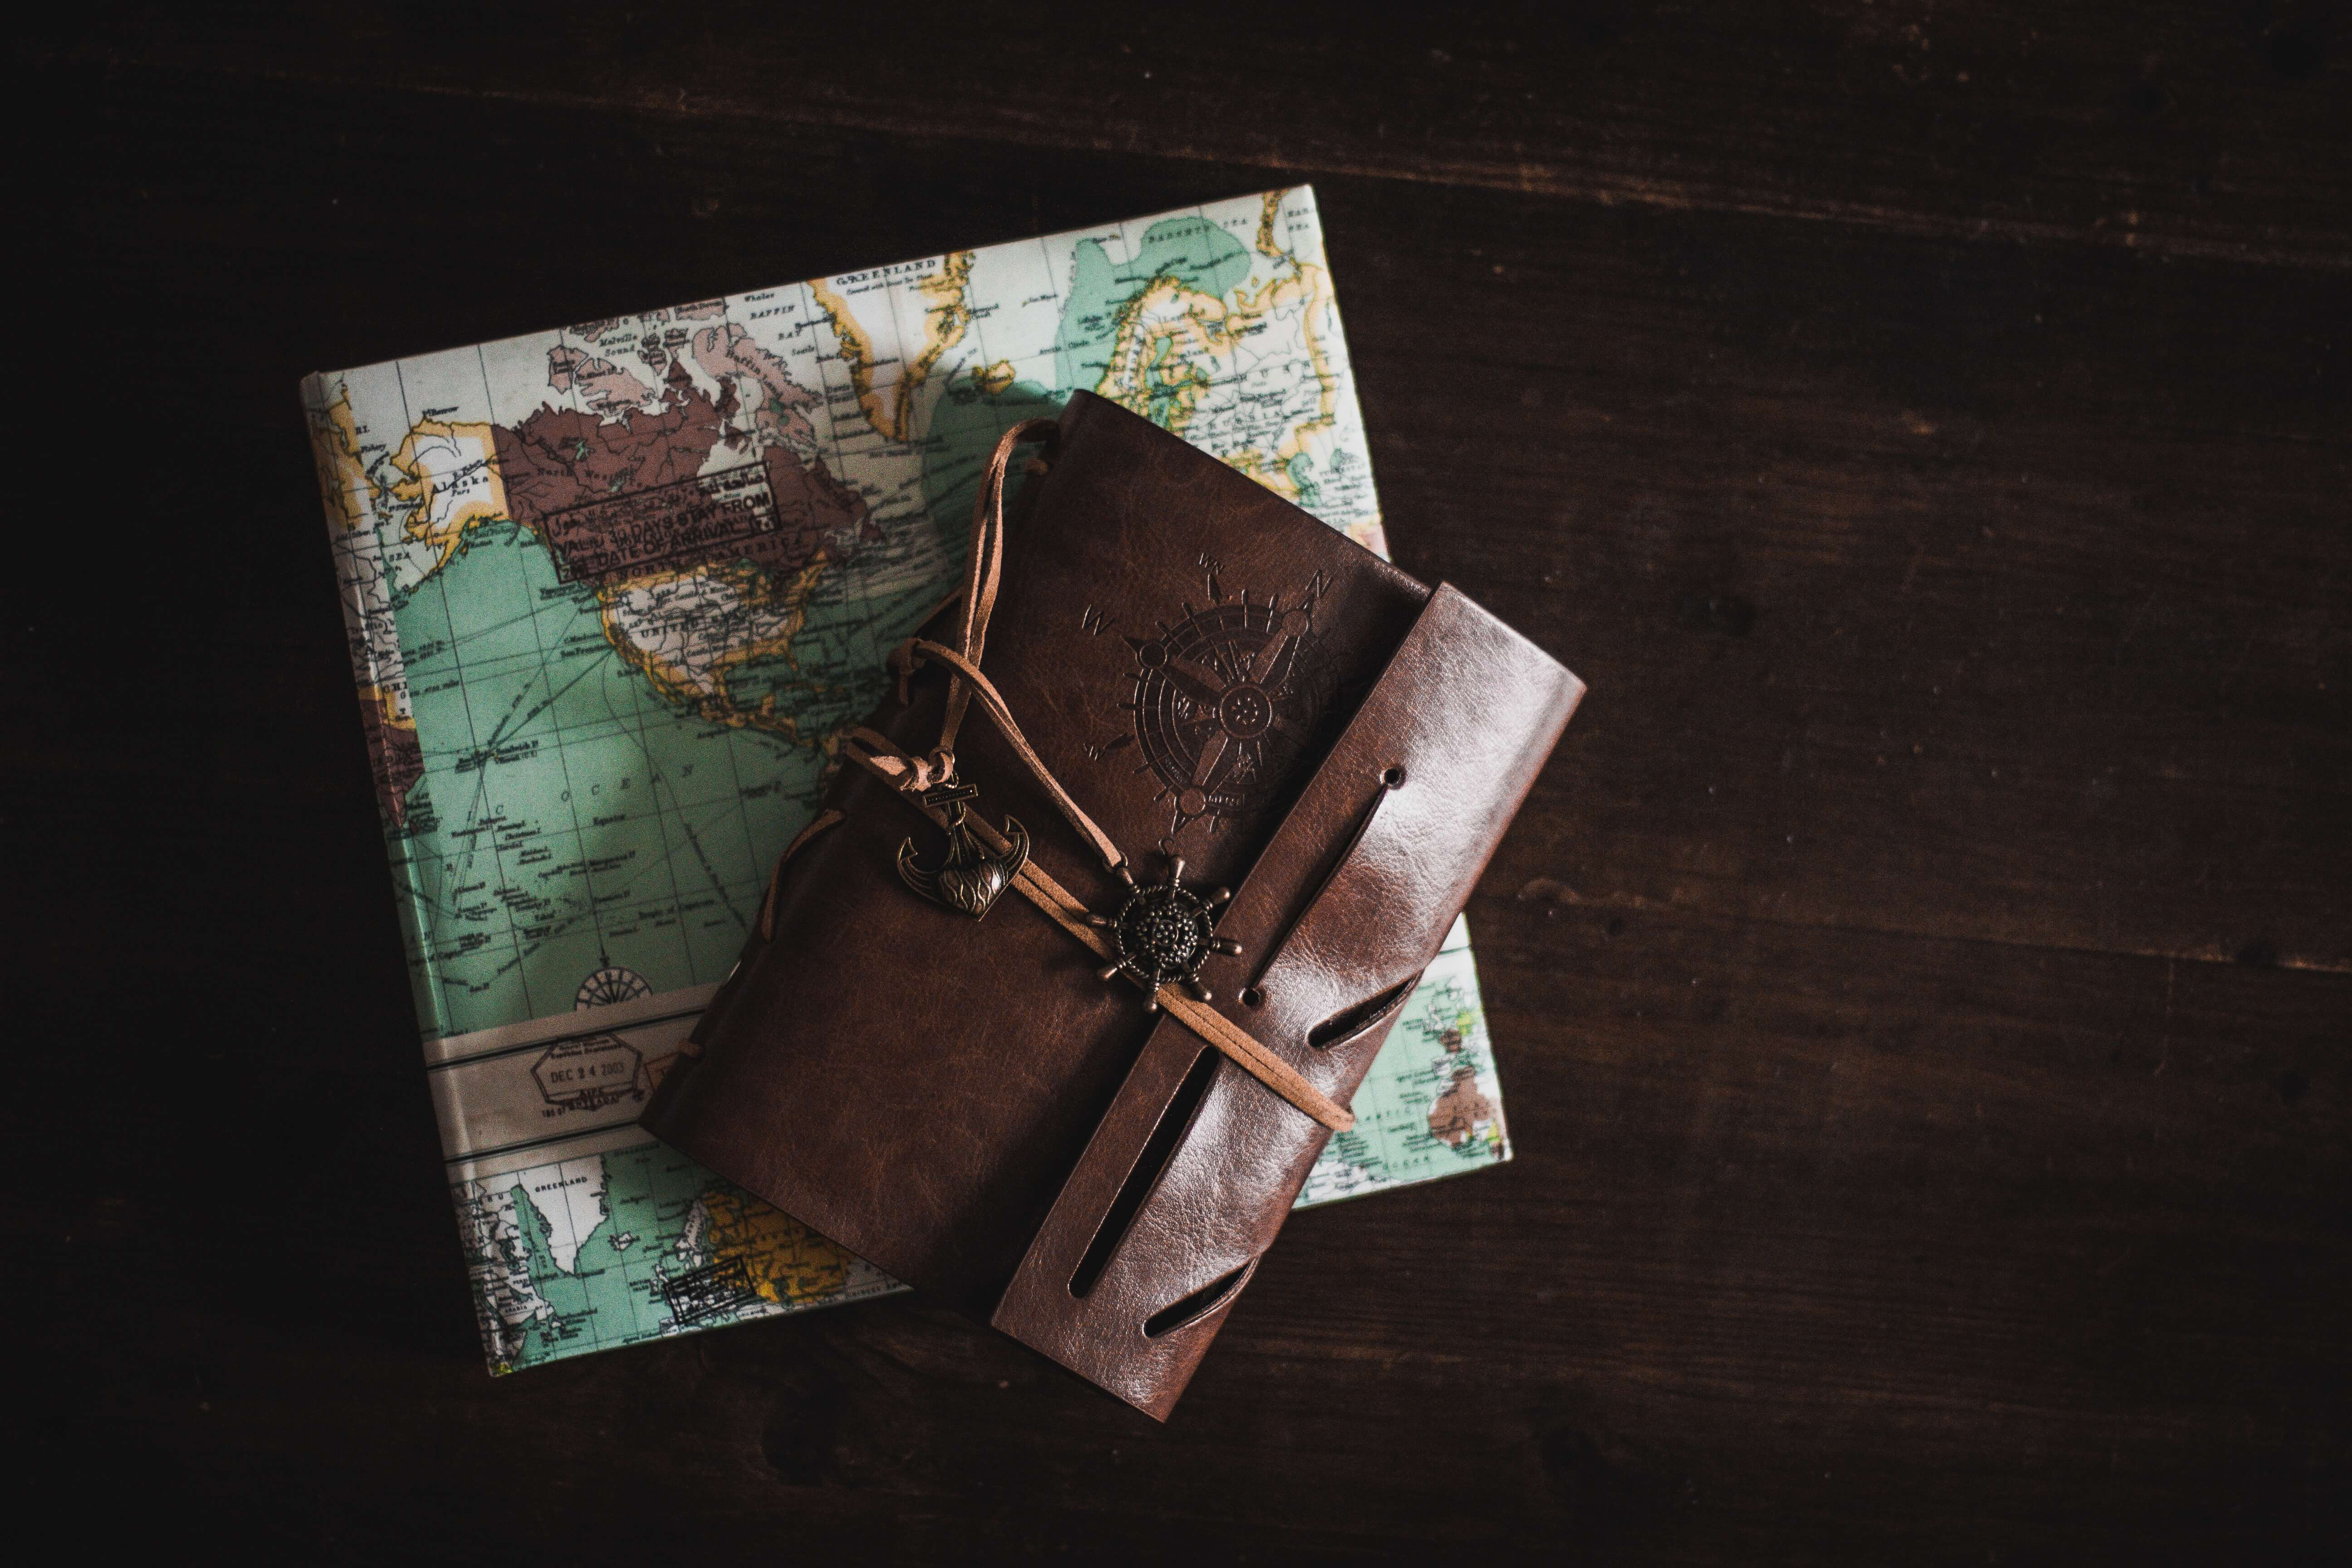 map-compass-book-wooden-table